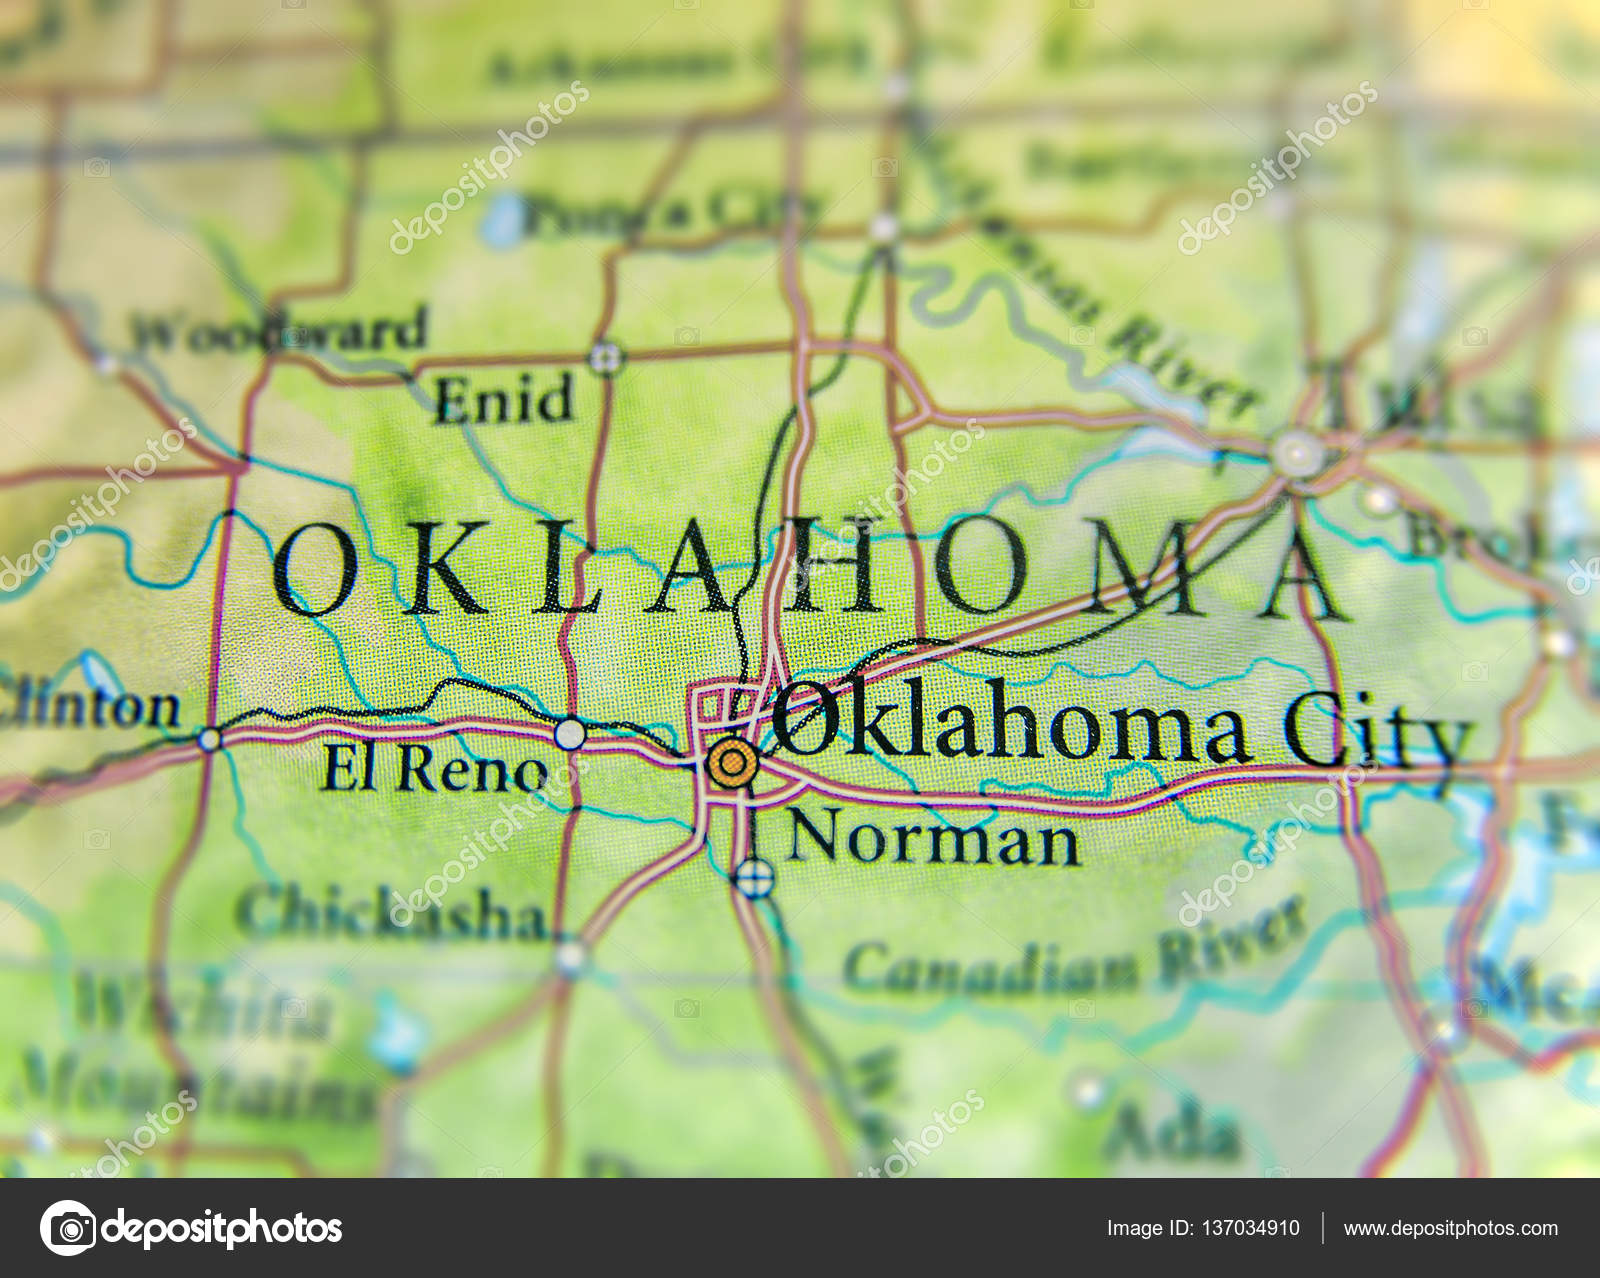 Geographic map of US state Oklahoma with important cities ... on mercator map of us, topographical map of us, topological map of us, ethnic map of us, printable map of us, equirectangular map of us, generic map of us, industry map of us, map map of us, education map of us, climatic map of us, transportation map of us, language map of us, microscopic map of us, housing map of us, sports map of us, artistic map of us, culture map of us, educational map of us,